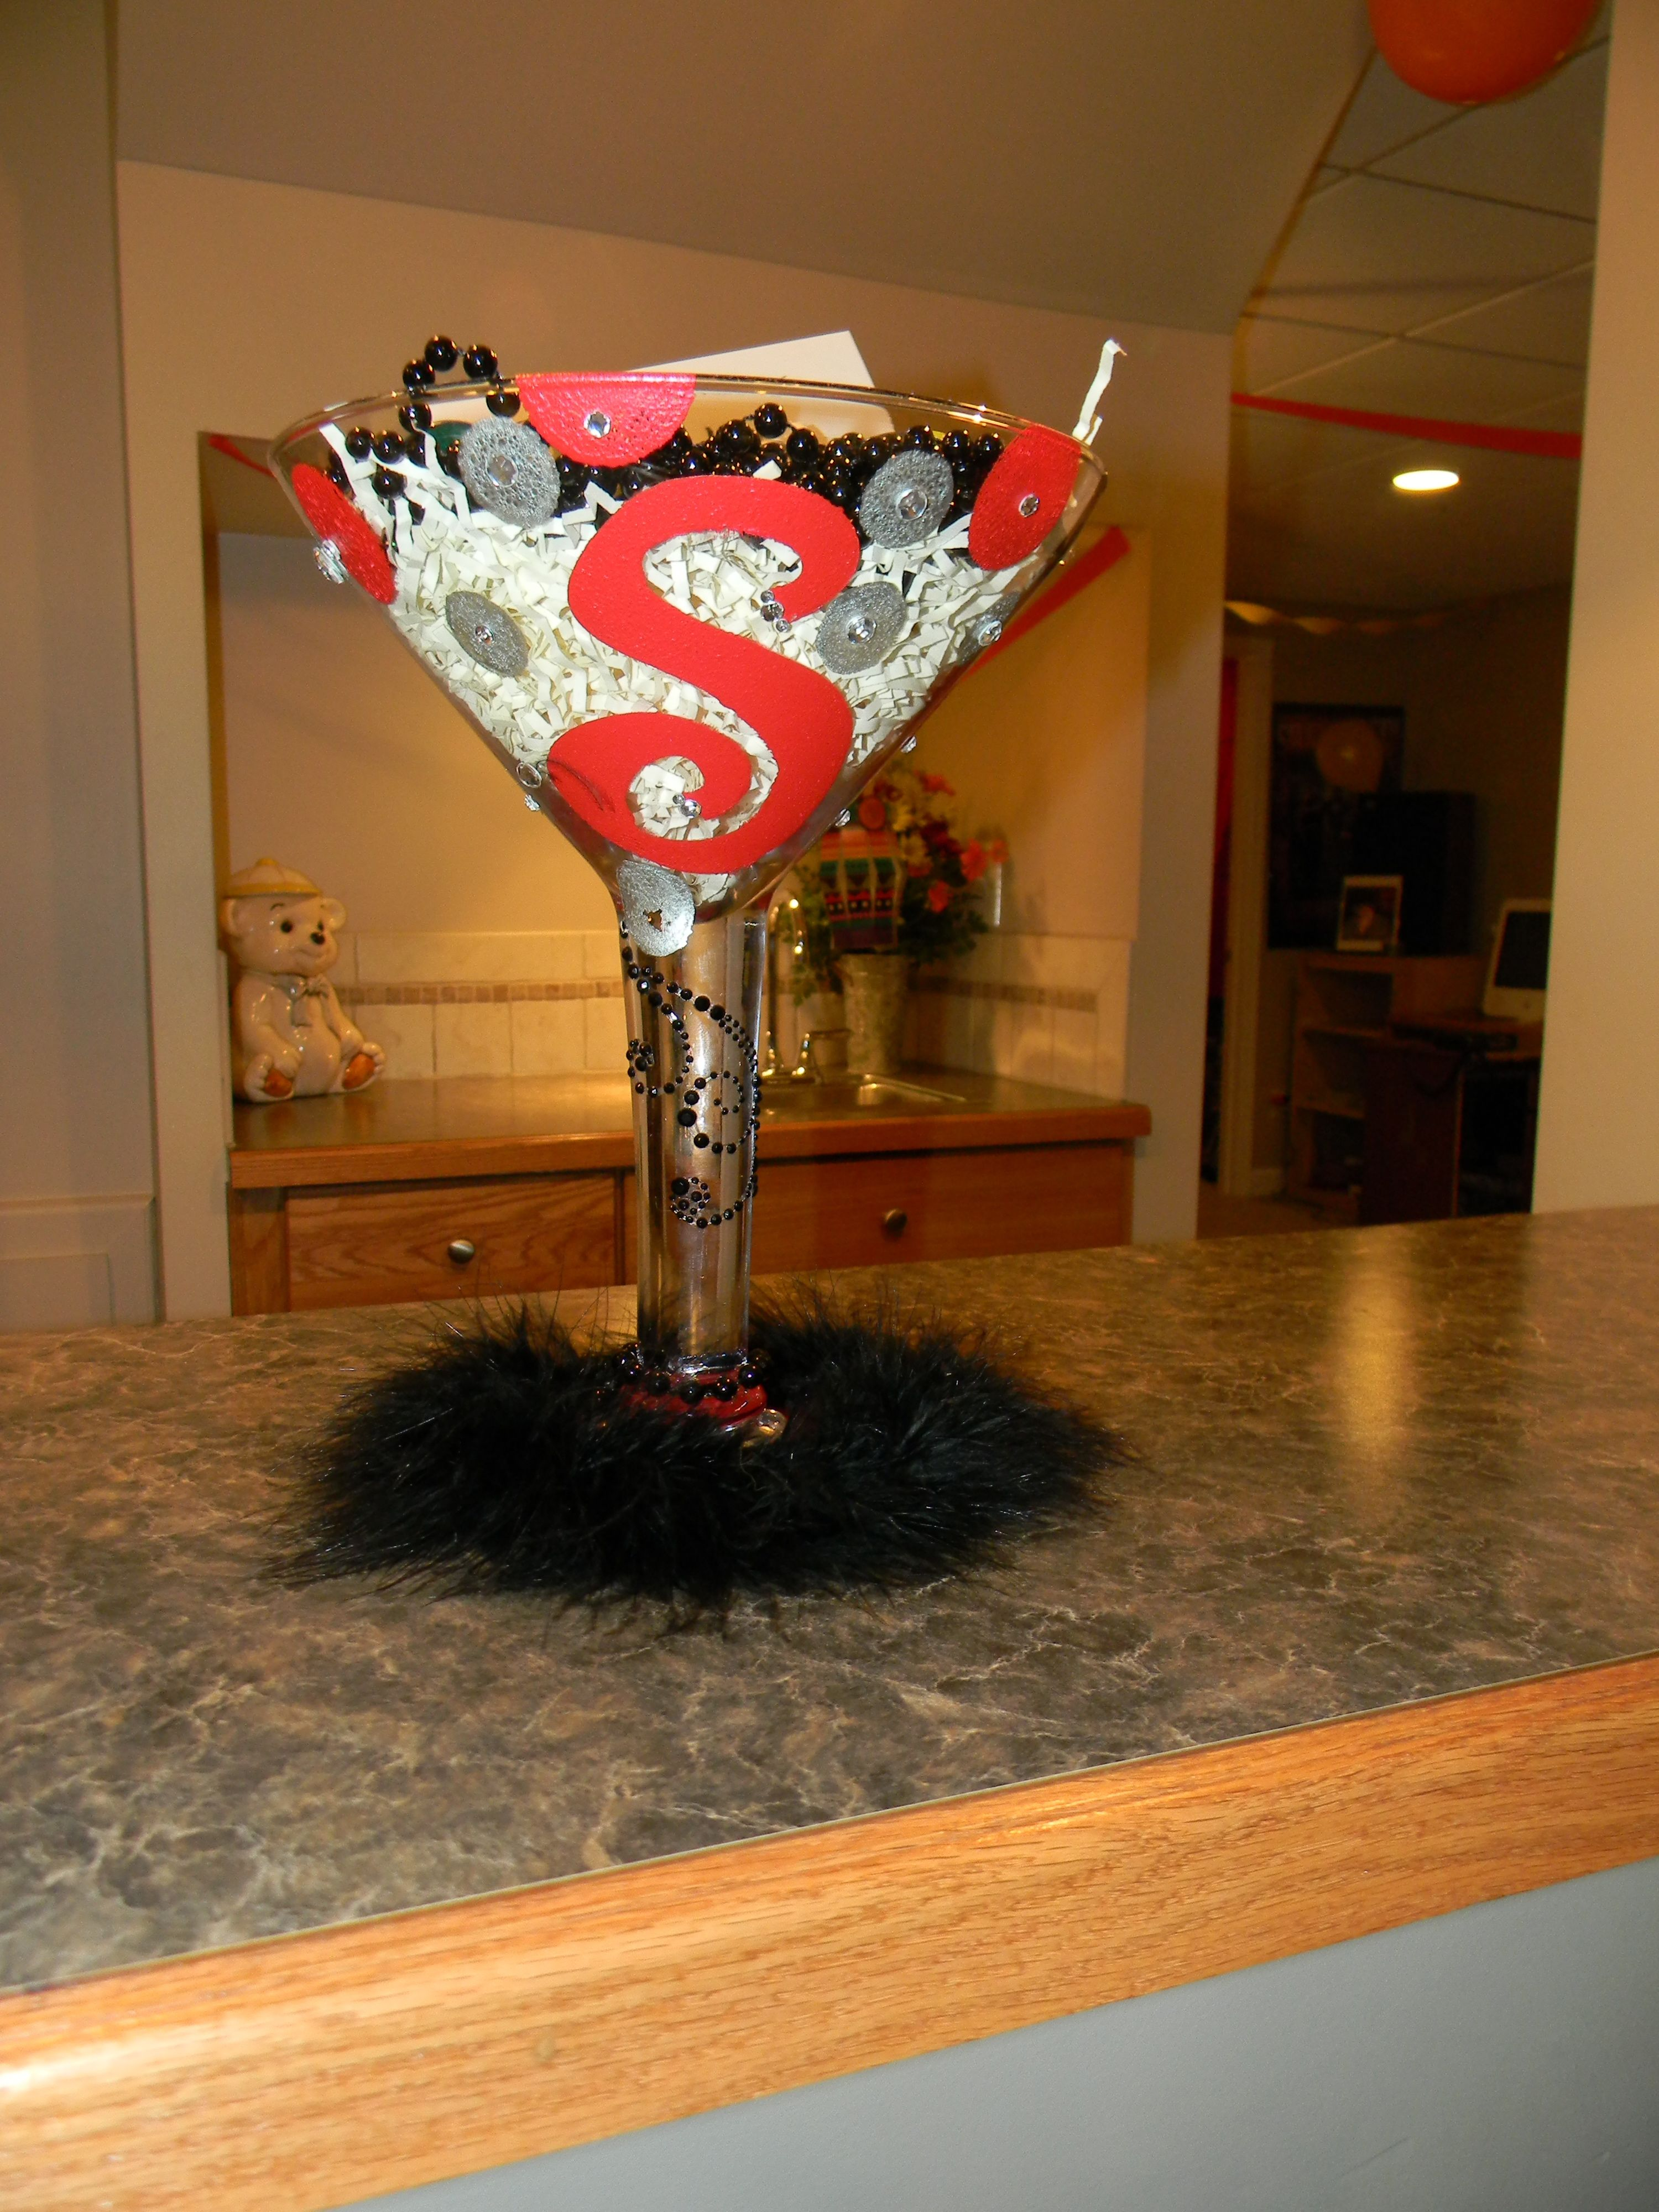 Giant Wine Glass Decorations 21st Birthday Gift Decorate A Giant Martini Glass Craft